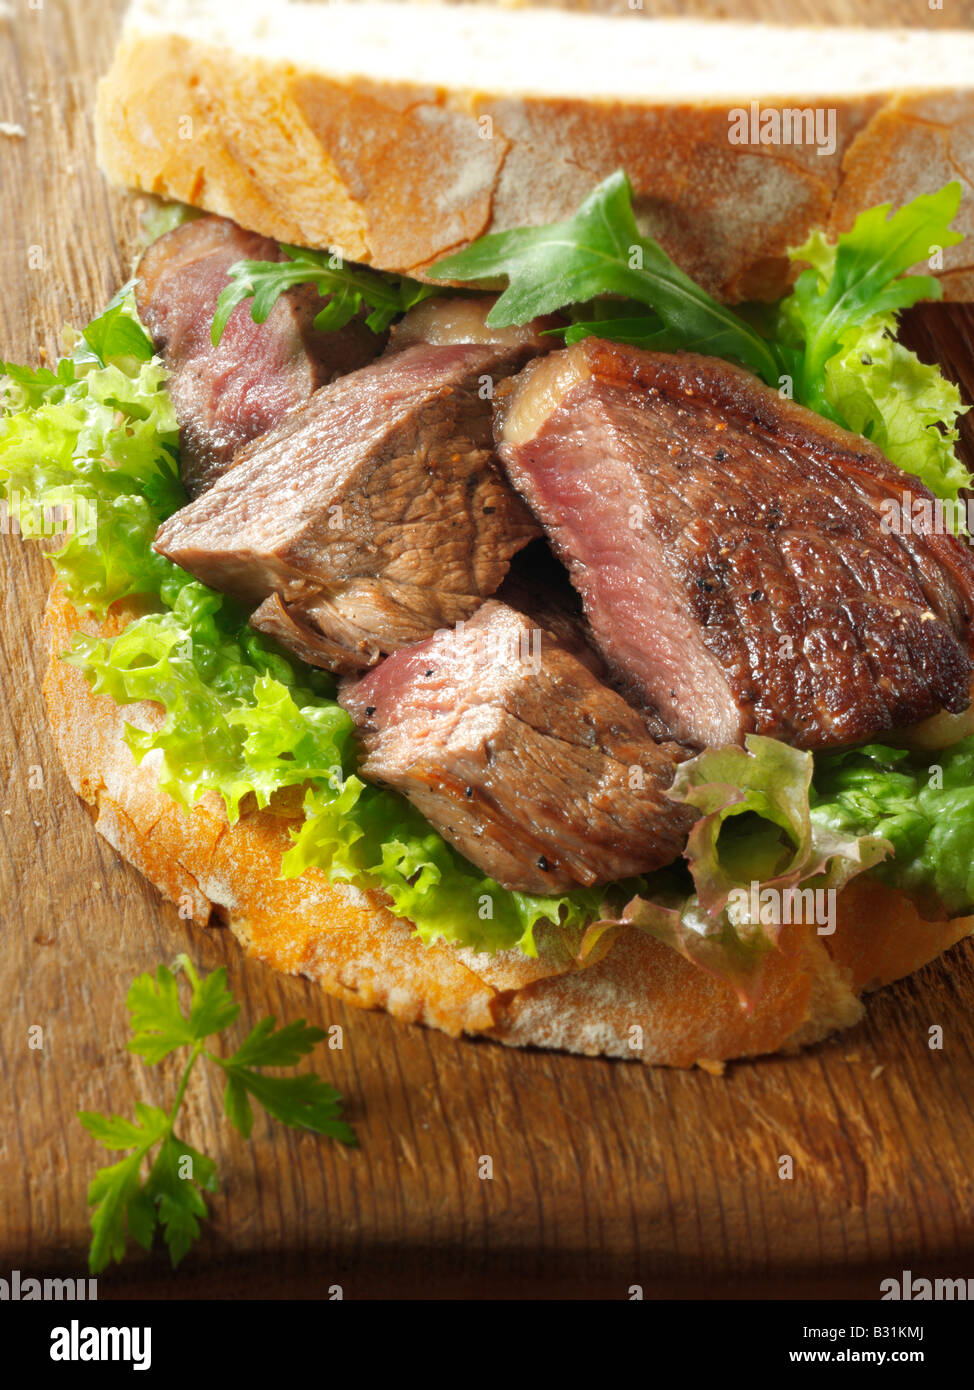 sirloin beef steak sandwich with salad Stock Photo